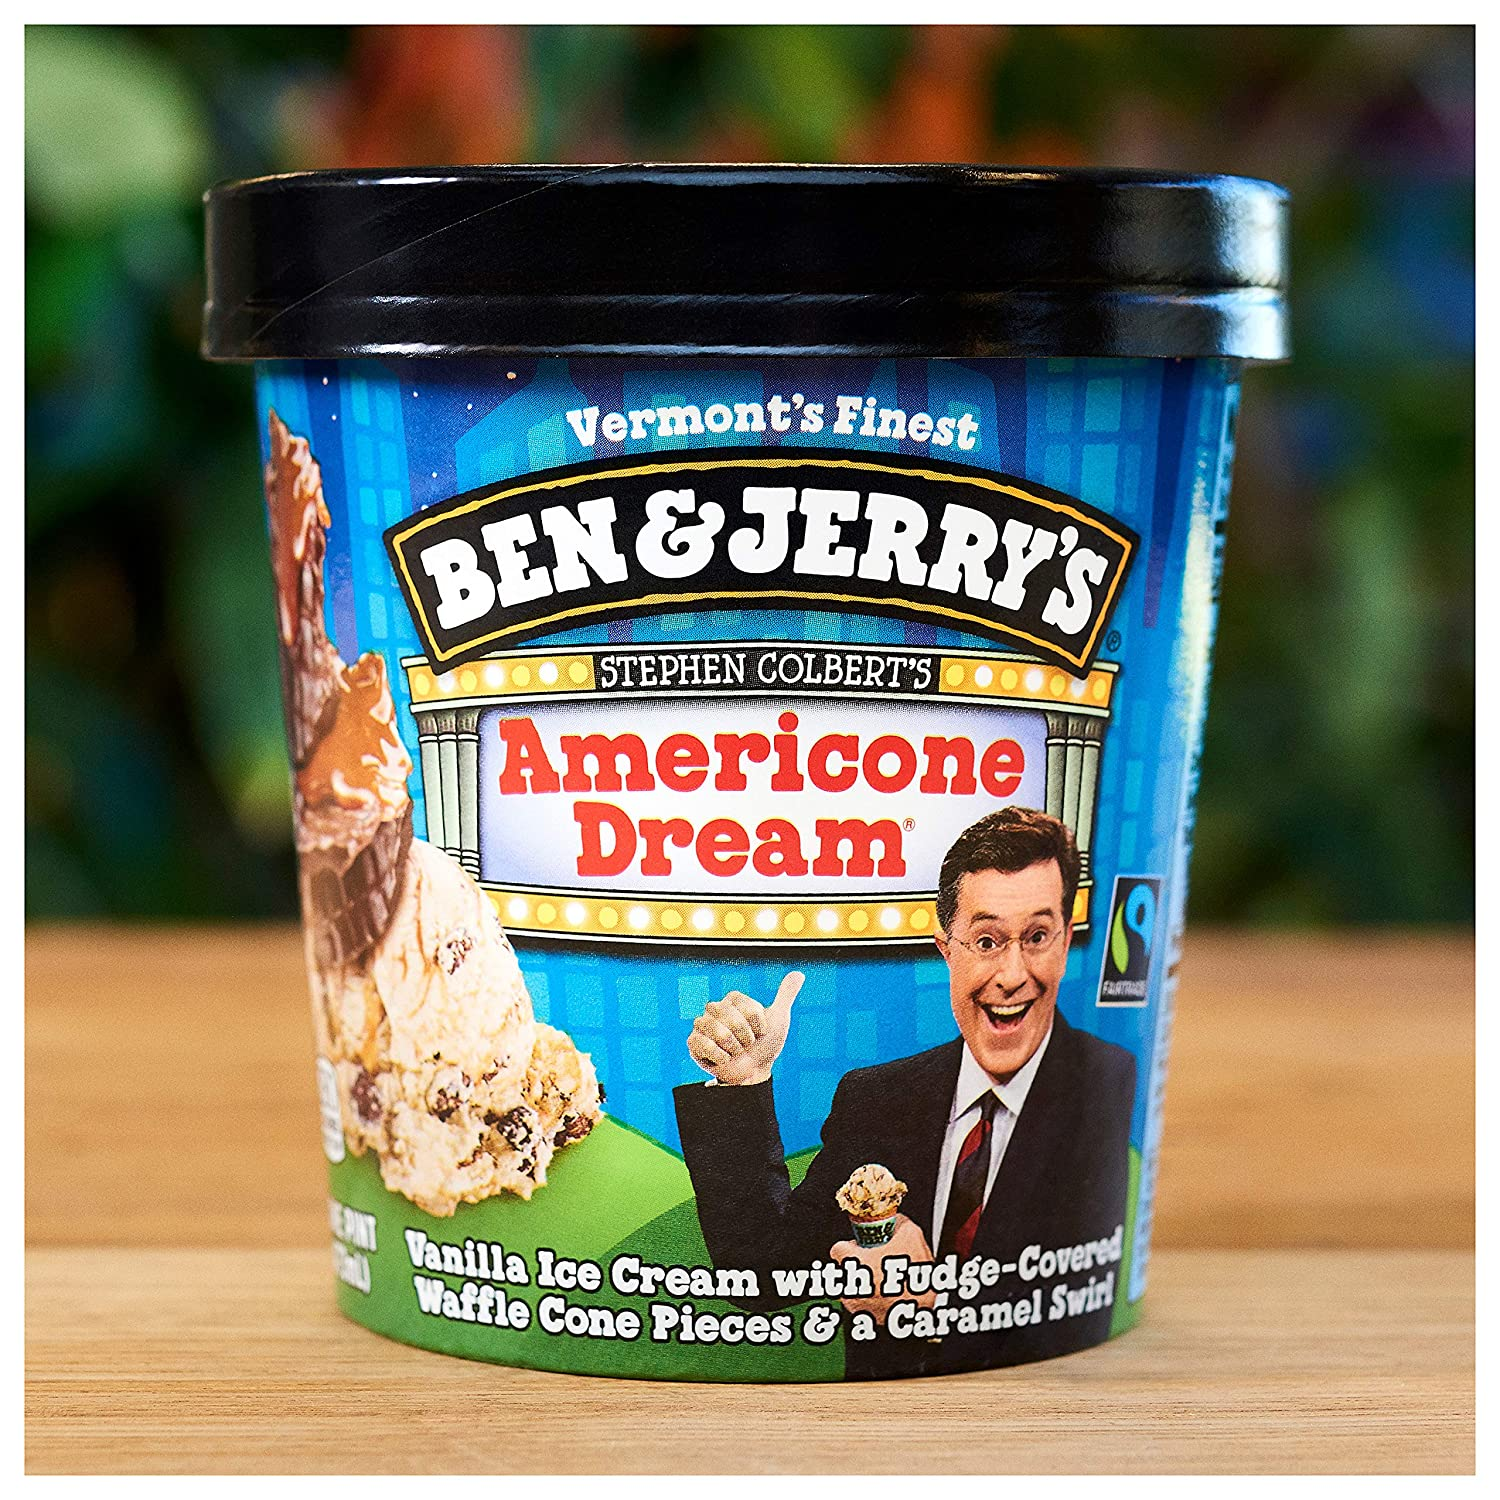 Ben And Jerry S Ice Cream Americone Dream Non Gmo 16 Oz Amazon Com Grocery Gourmet Food I just want to say that now that i have found ben & jerry's americone dream ice cream, my life now has purpose!! ice cream americone dream non gmo 16 oz